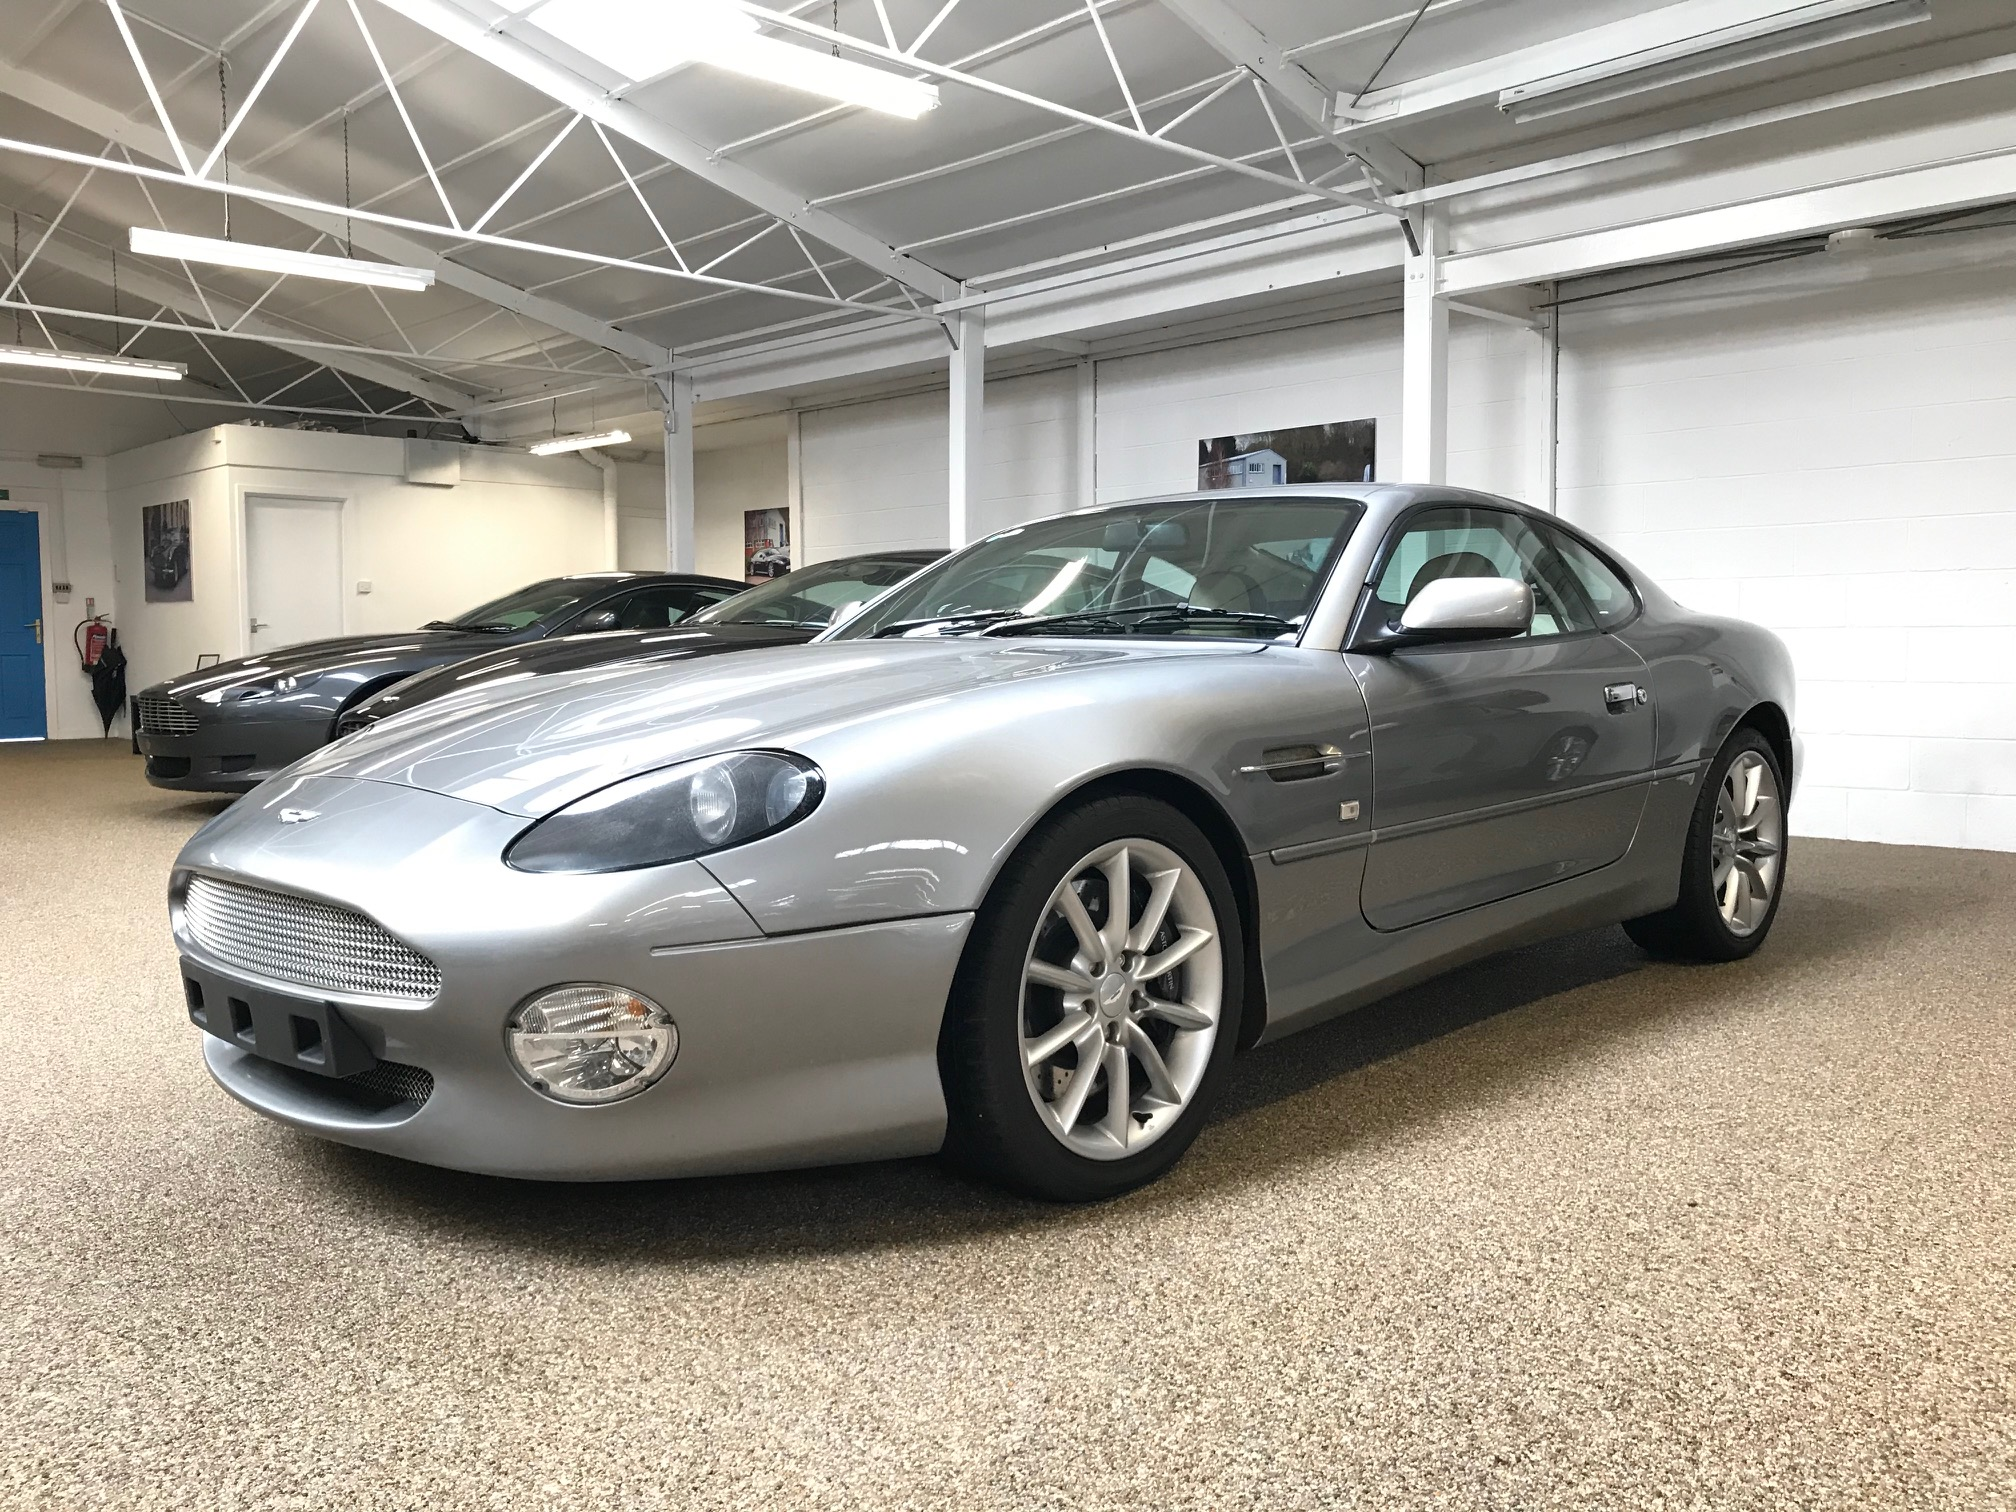 Used Aston Martin DB7 Vantage for sale